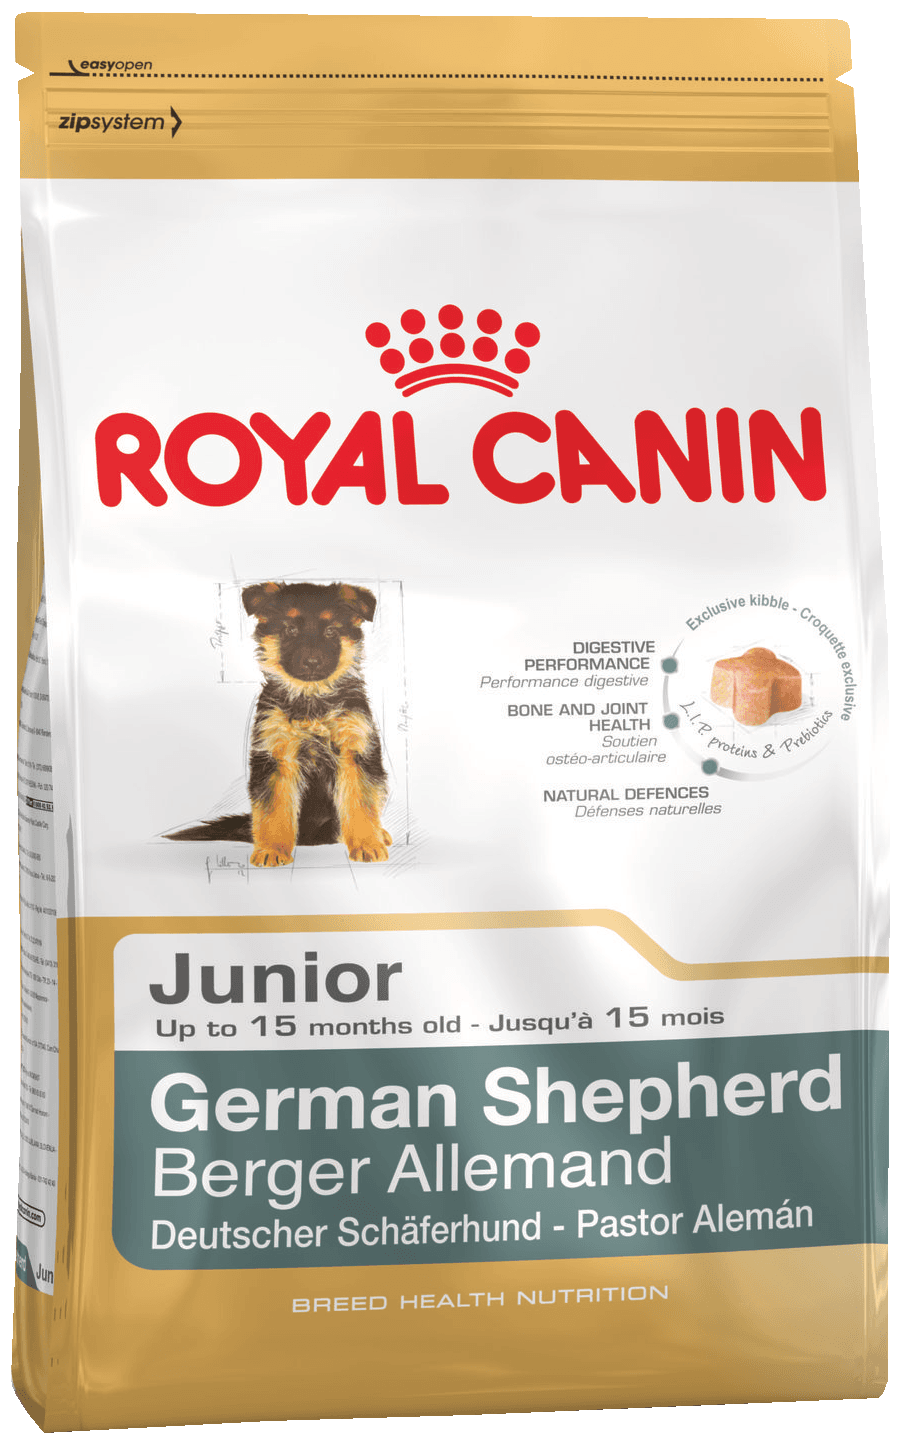 Hypoallergenic DR 25 - Cat Food - Royal Canin